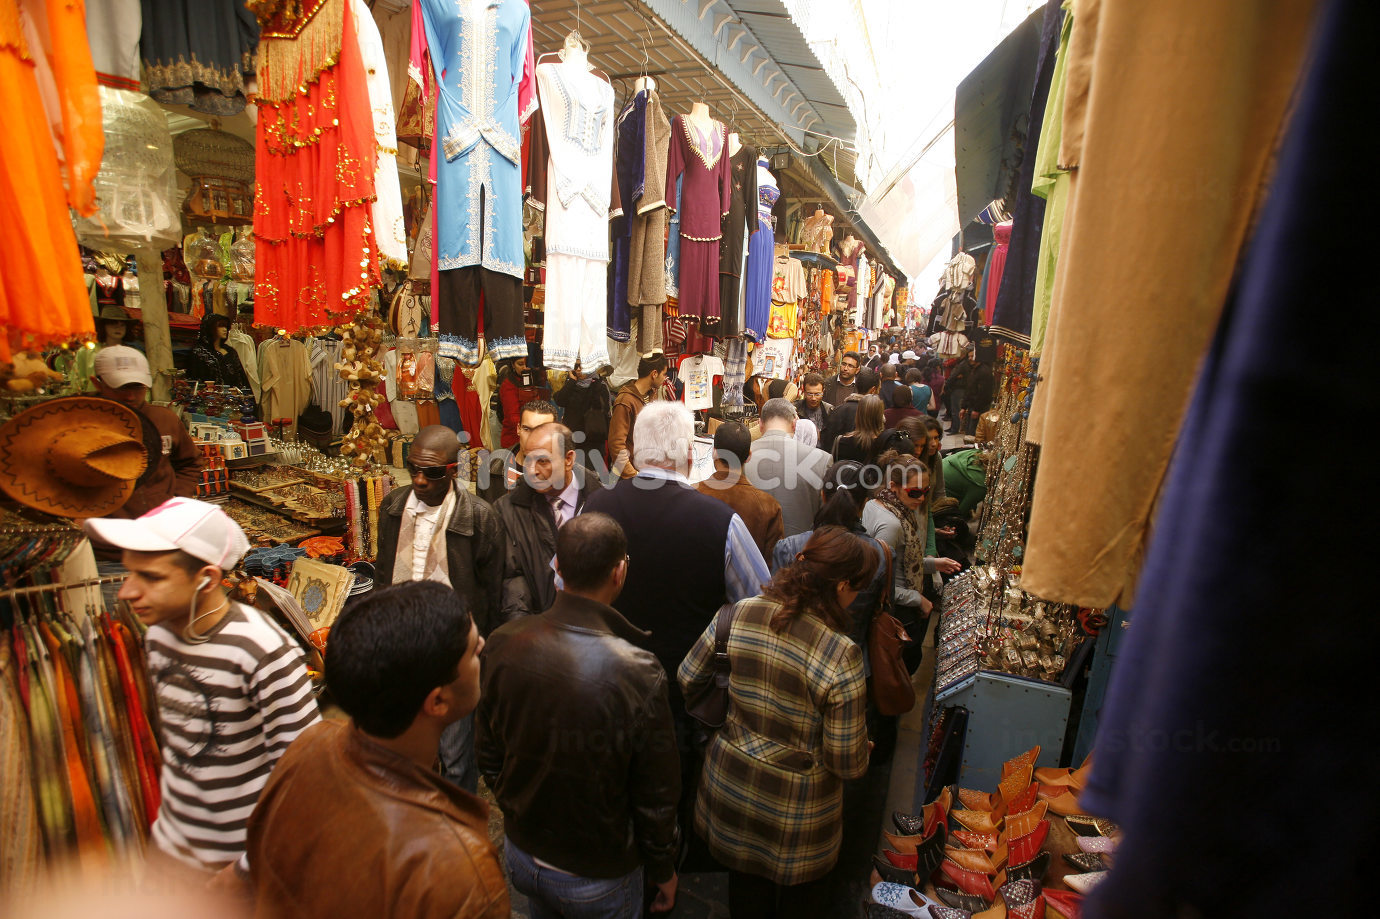 a Marketstreet in the Souq, Market or bazaar in the Old City of Tunis in north of Tunisia in North Africa,  Tunisia, Sidi Bou Sair, March, 2009